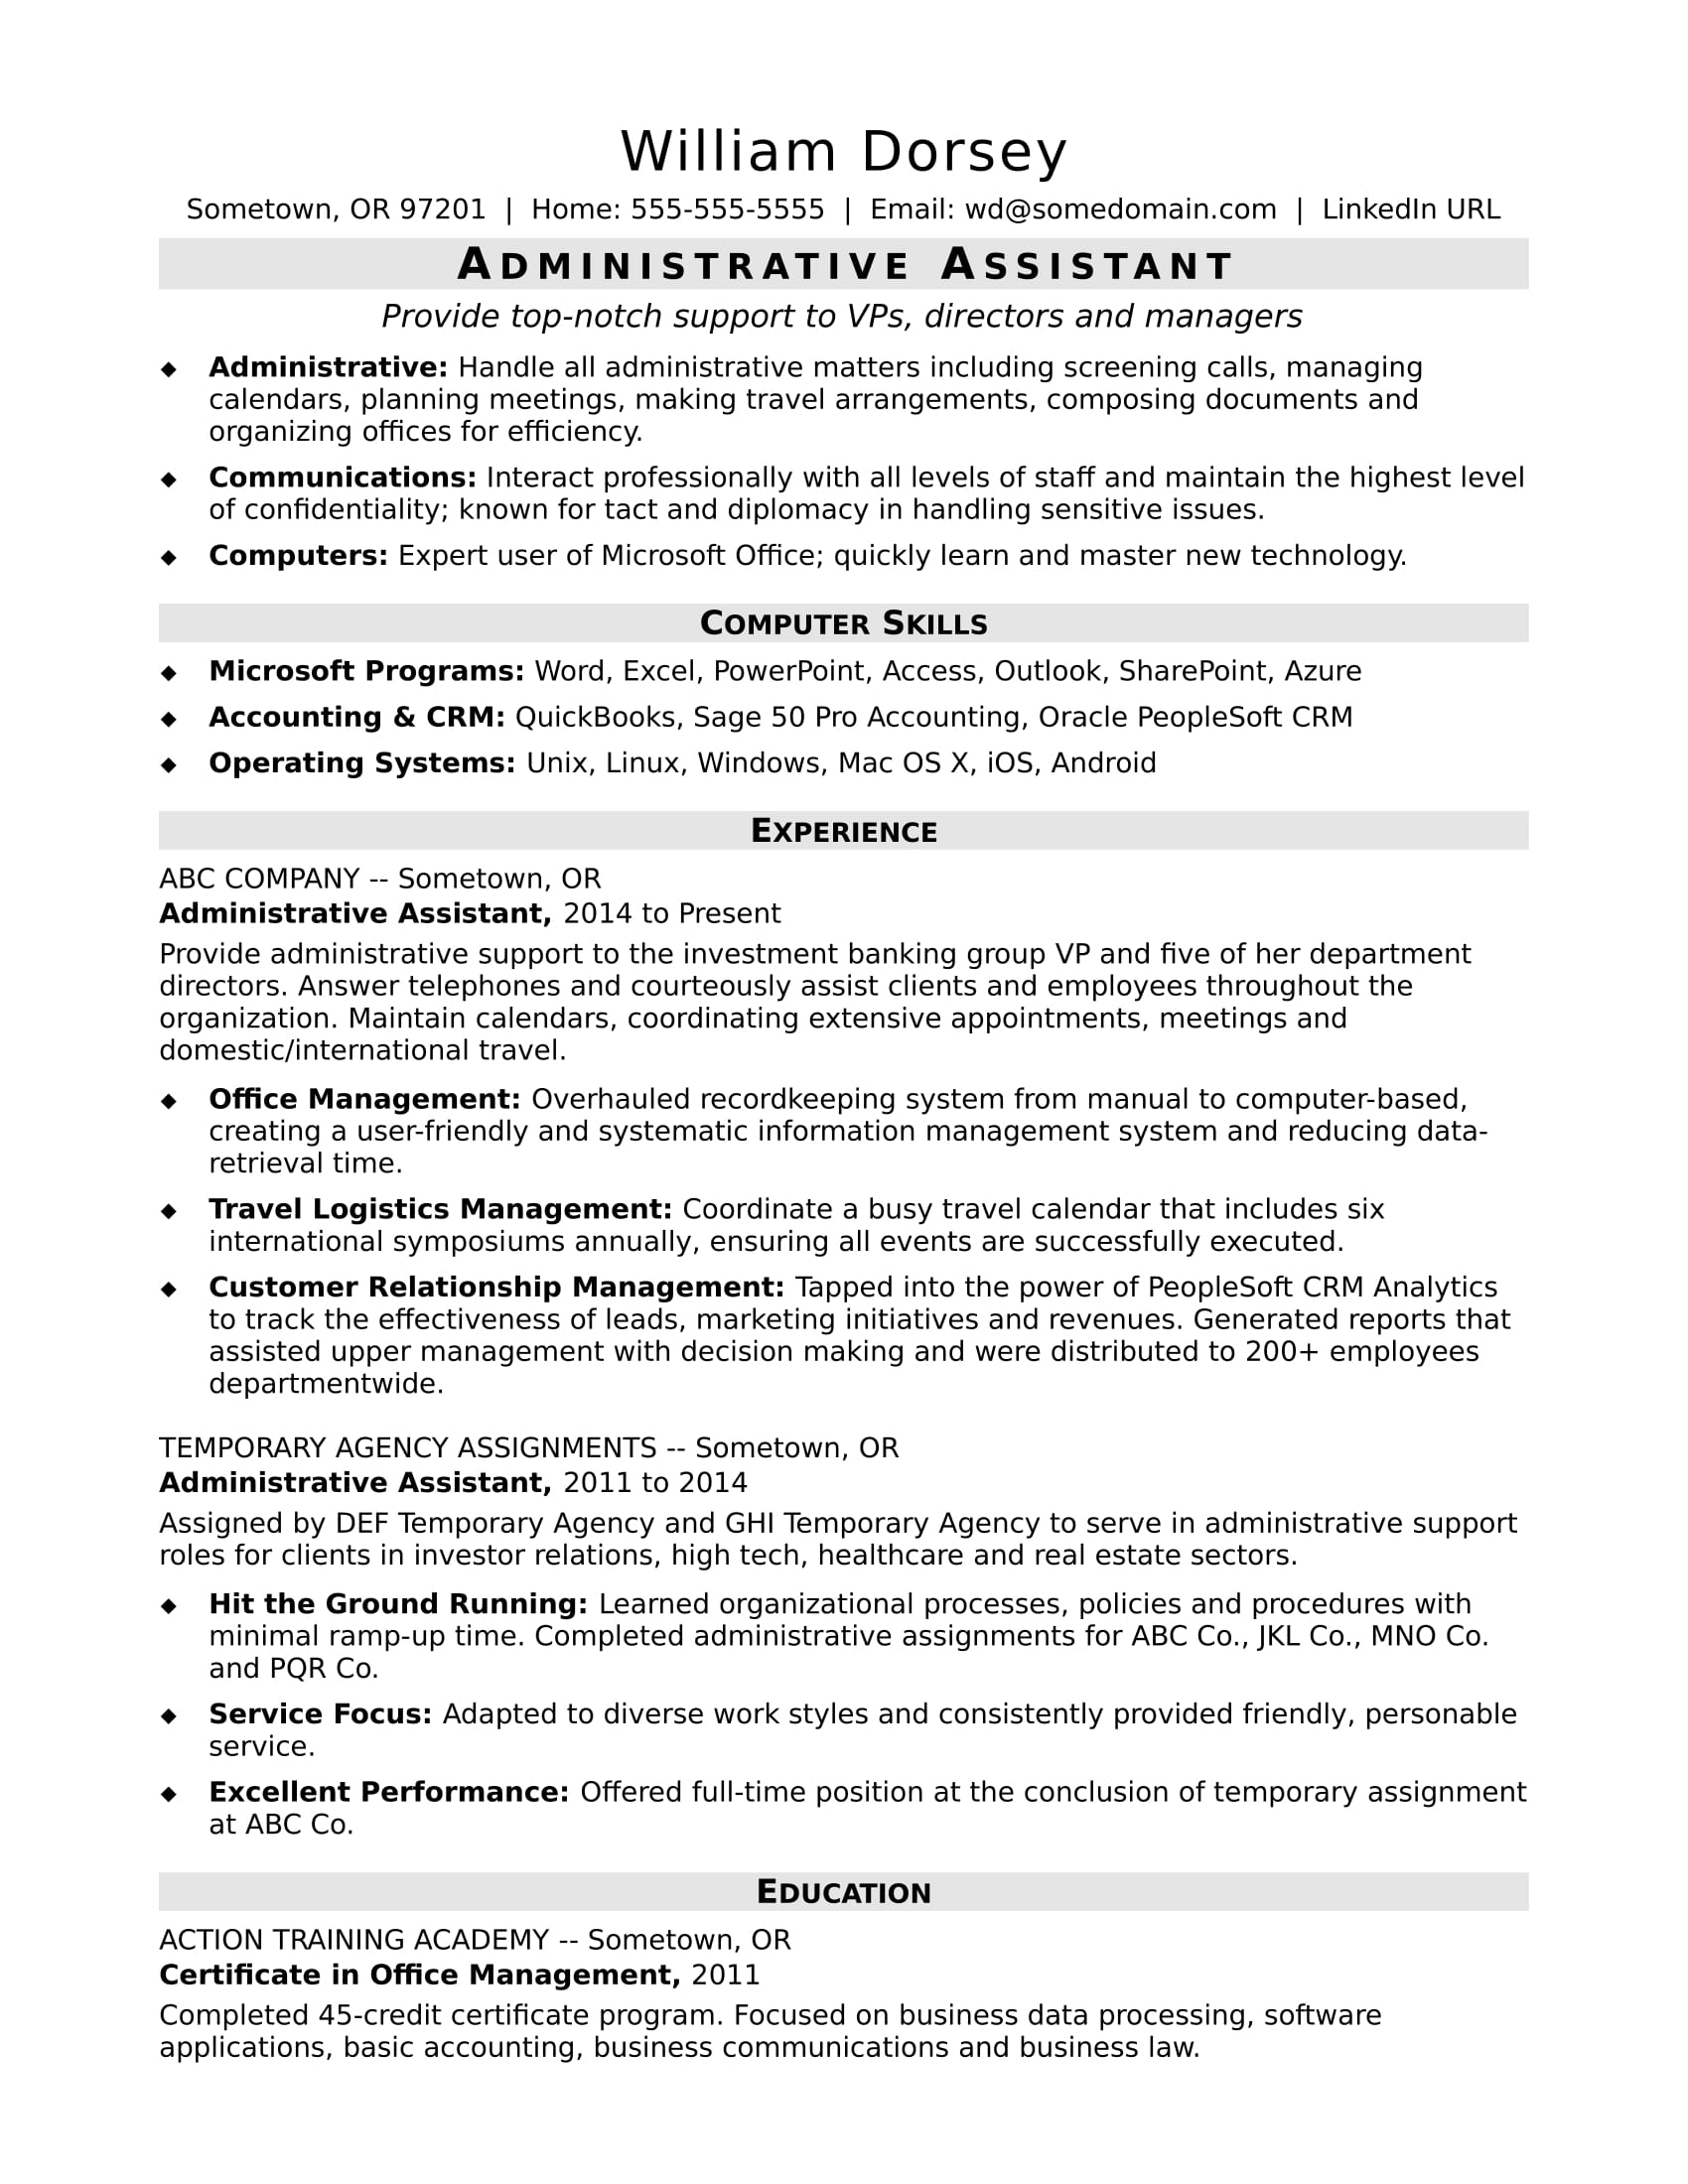 sample resume for a midlevel administrative assistant - Resume Skills For Administrative Assistant Position